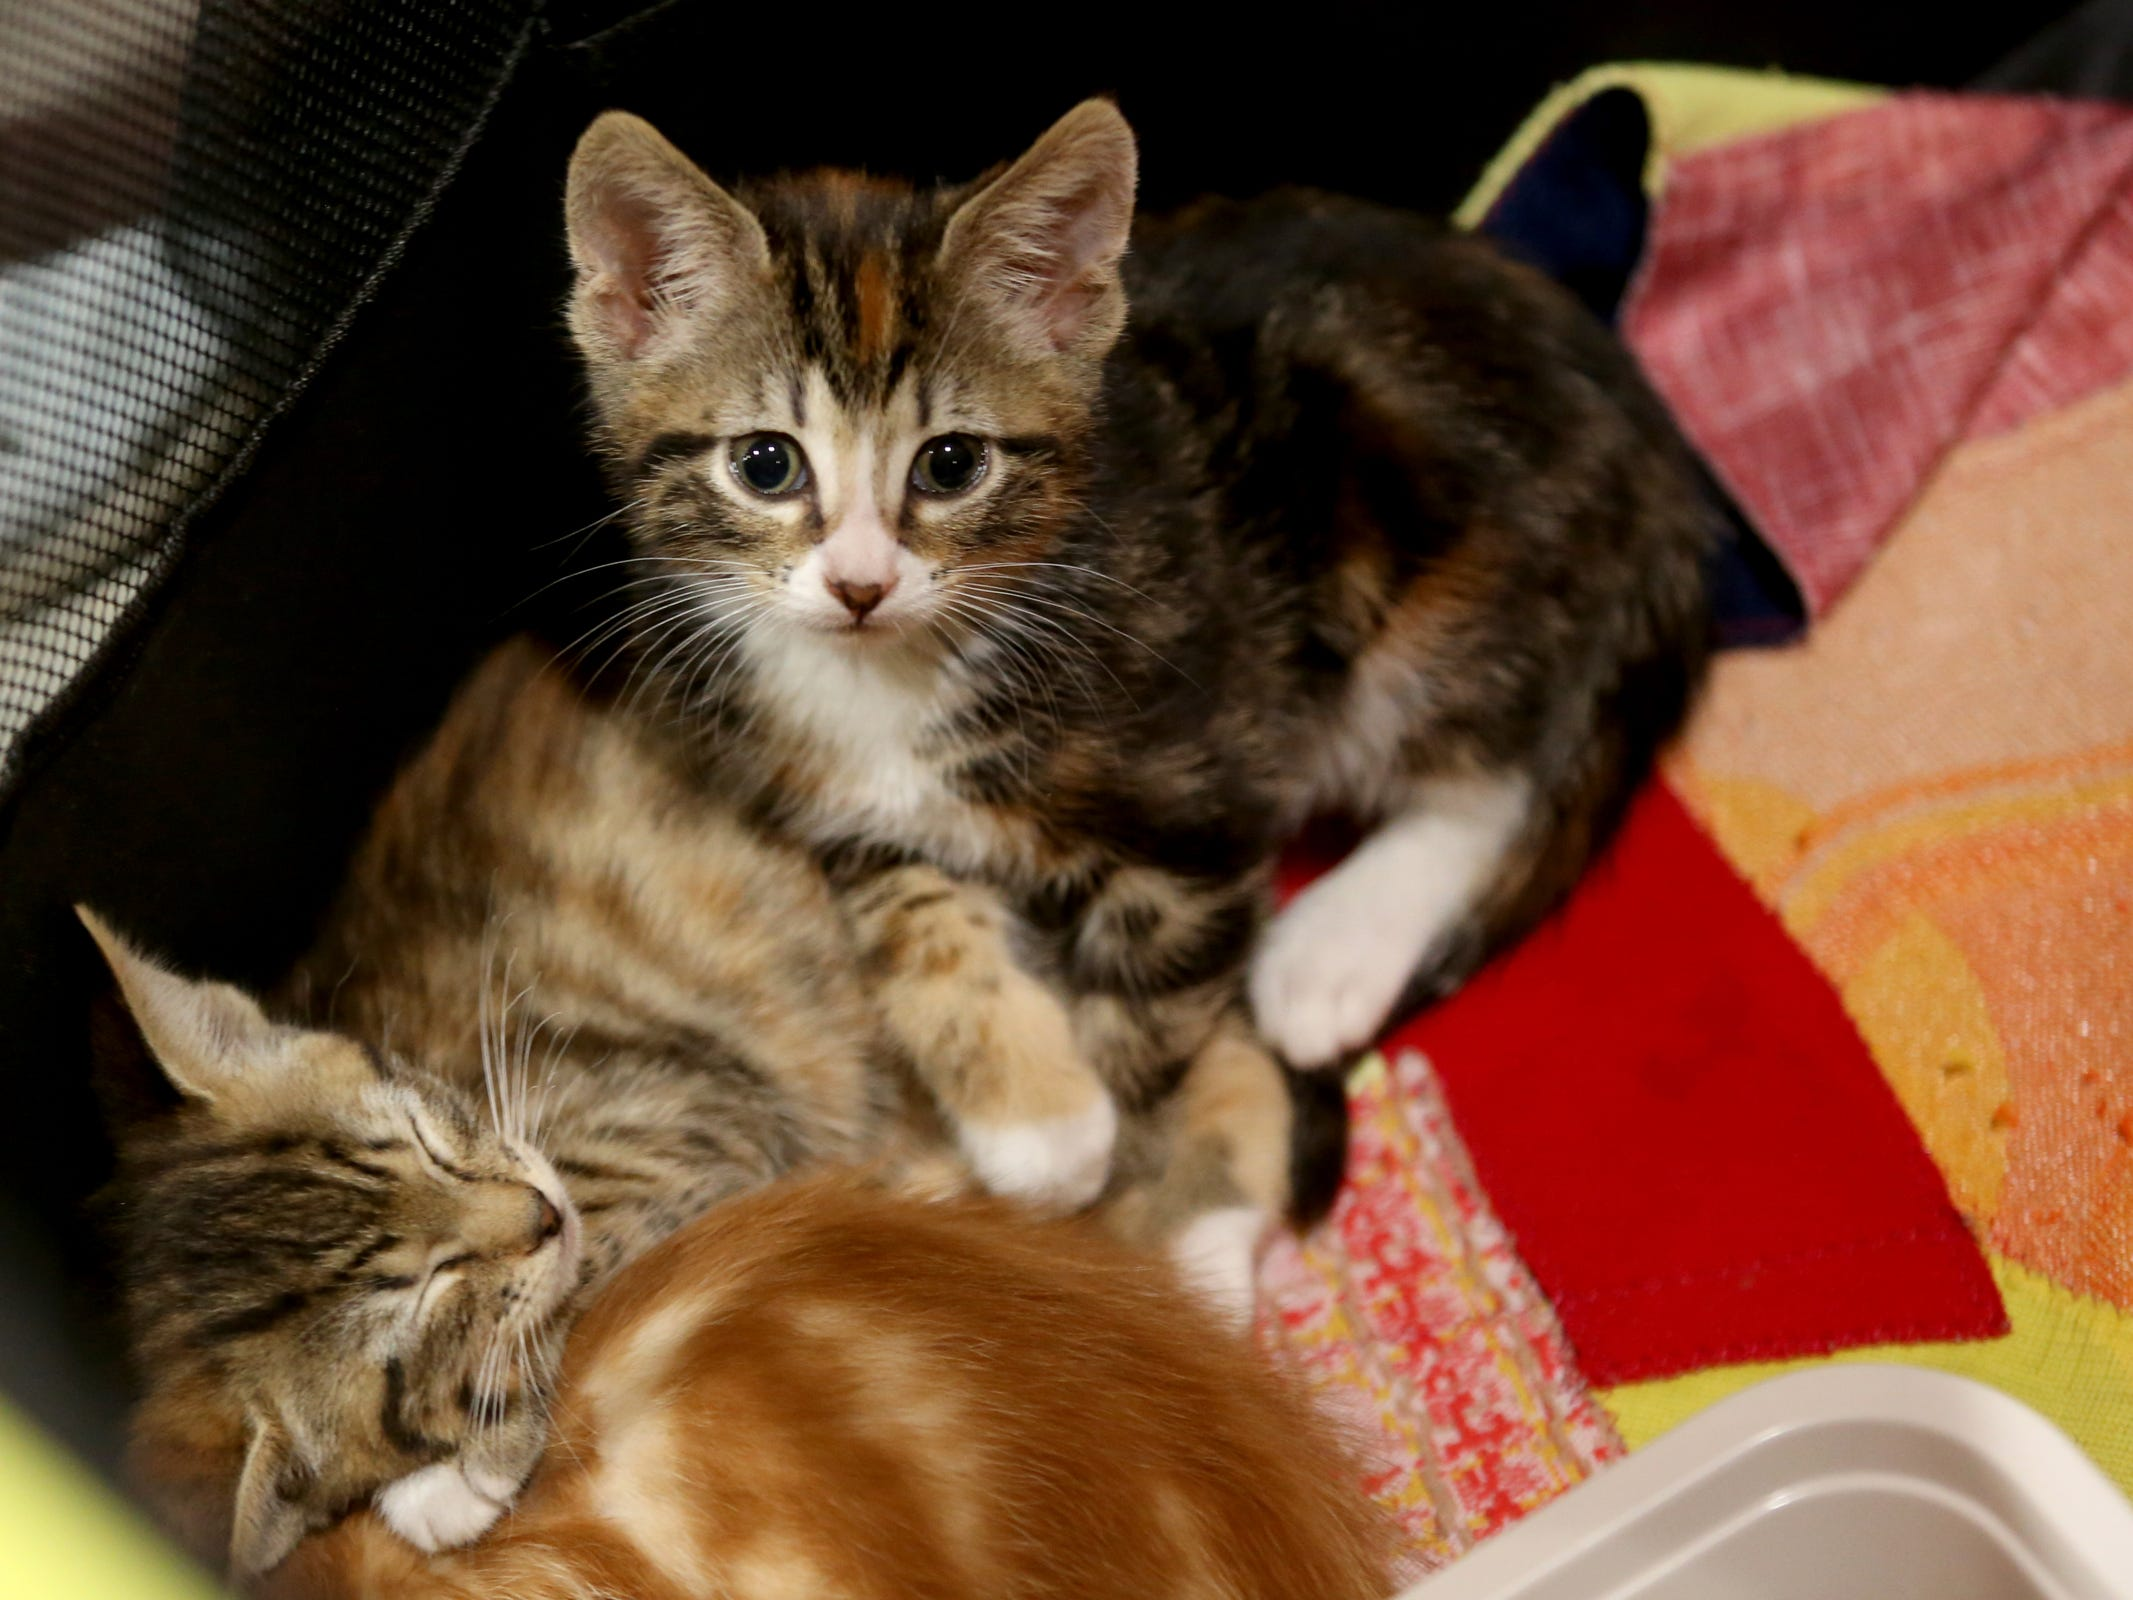 Kittens soon to be available for adoption at Bowser's Boo Bash, a fundraiser for the Willamette Humane Society, at the Salem Convention Center on Saturday, Oct. 27, 2018.